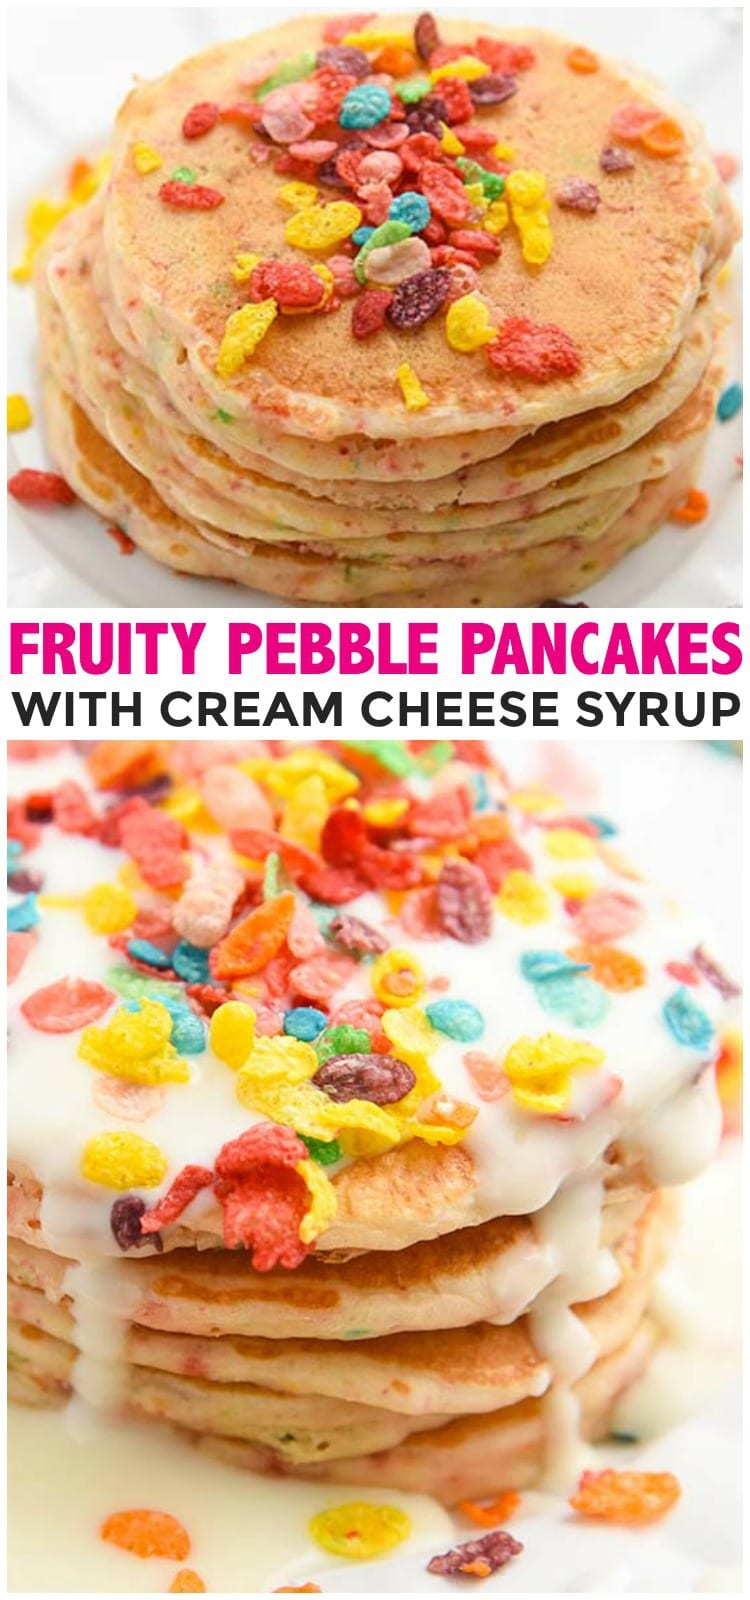 Fruity Pebble Pancakes Pinterest